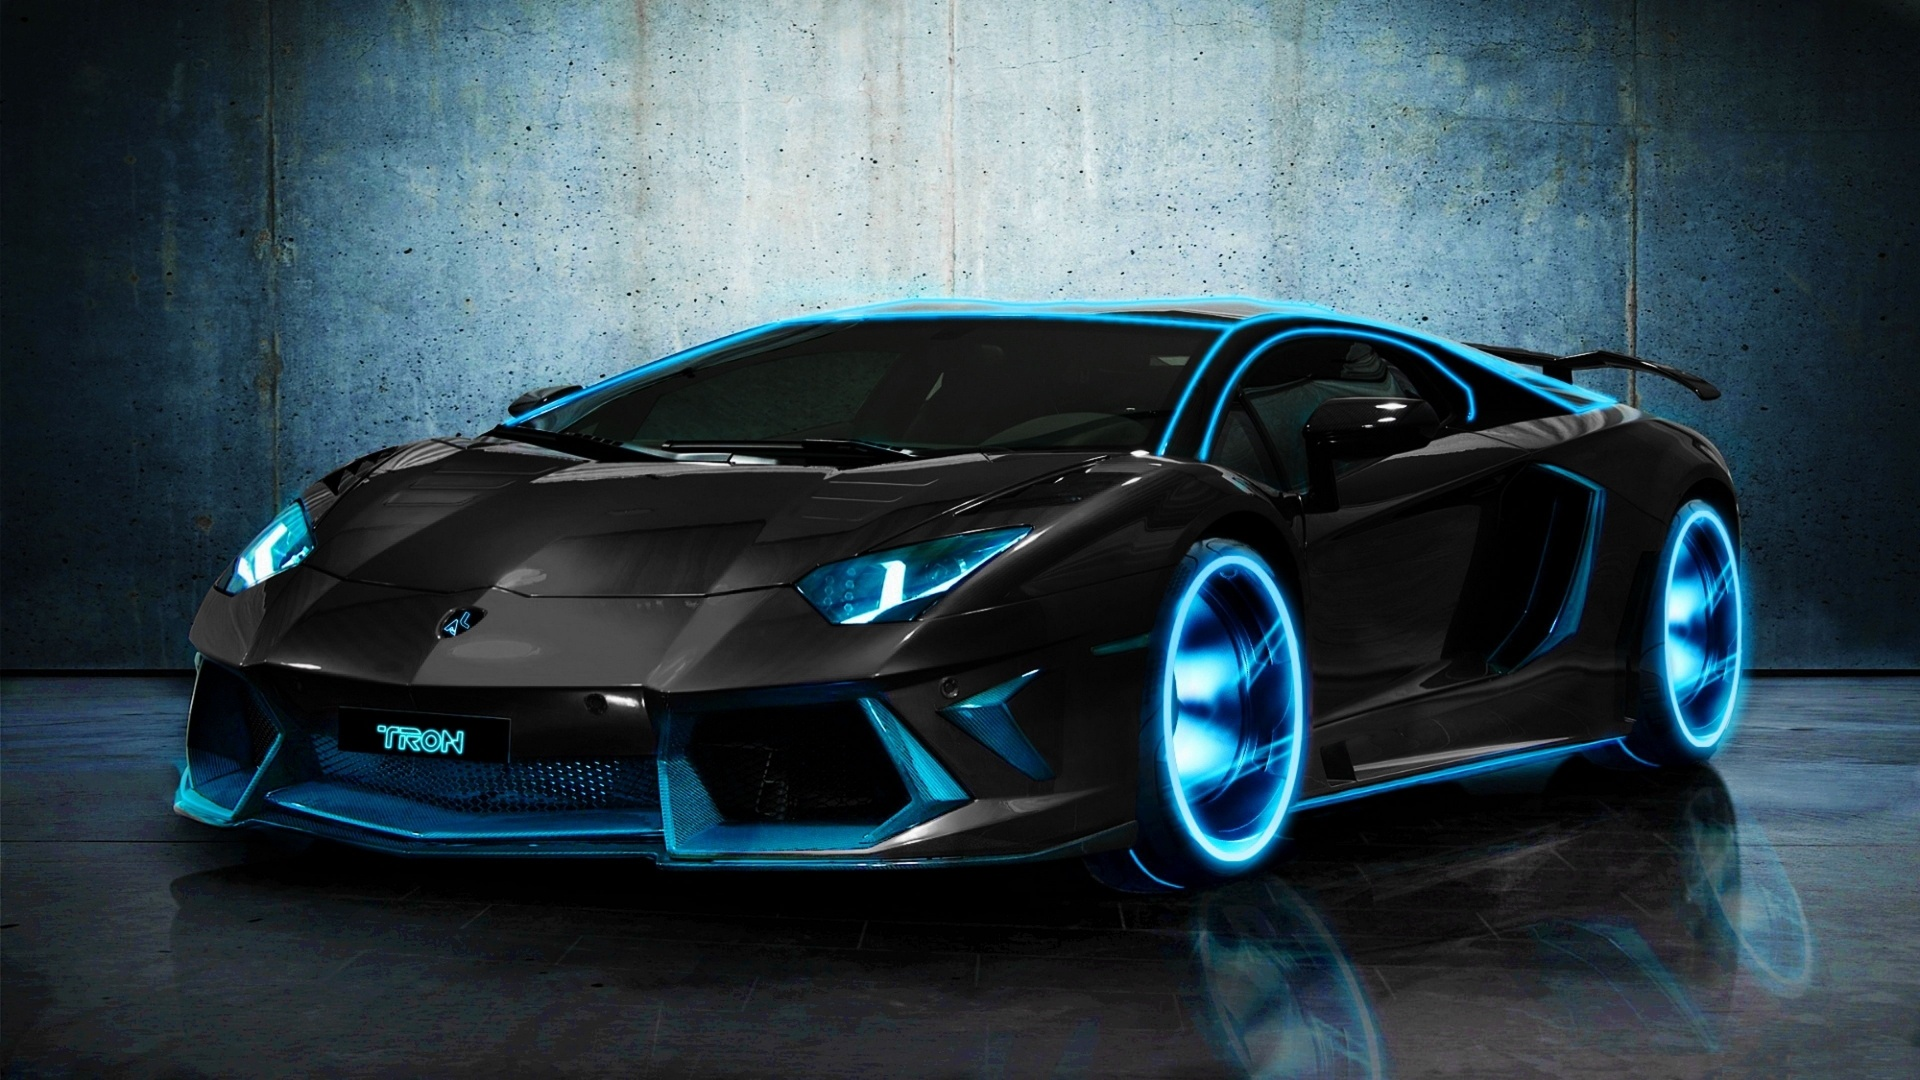 Aventador Car Wallpaper 1920x1080 HD Wallpaper Cars Lamborghini 1920x1080